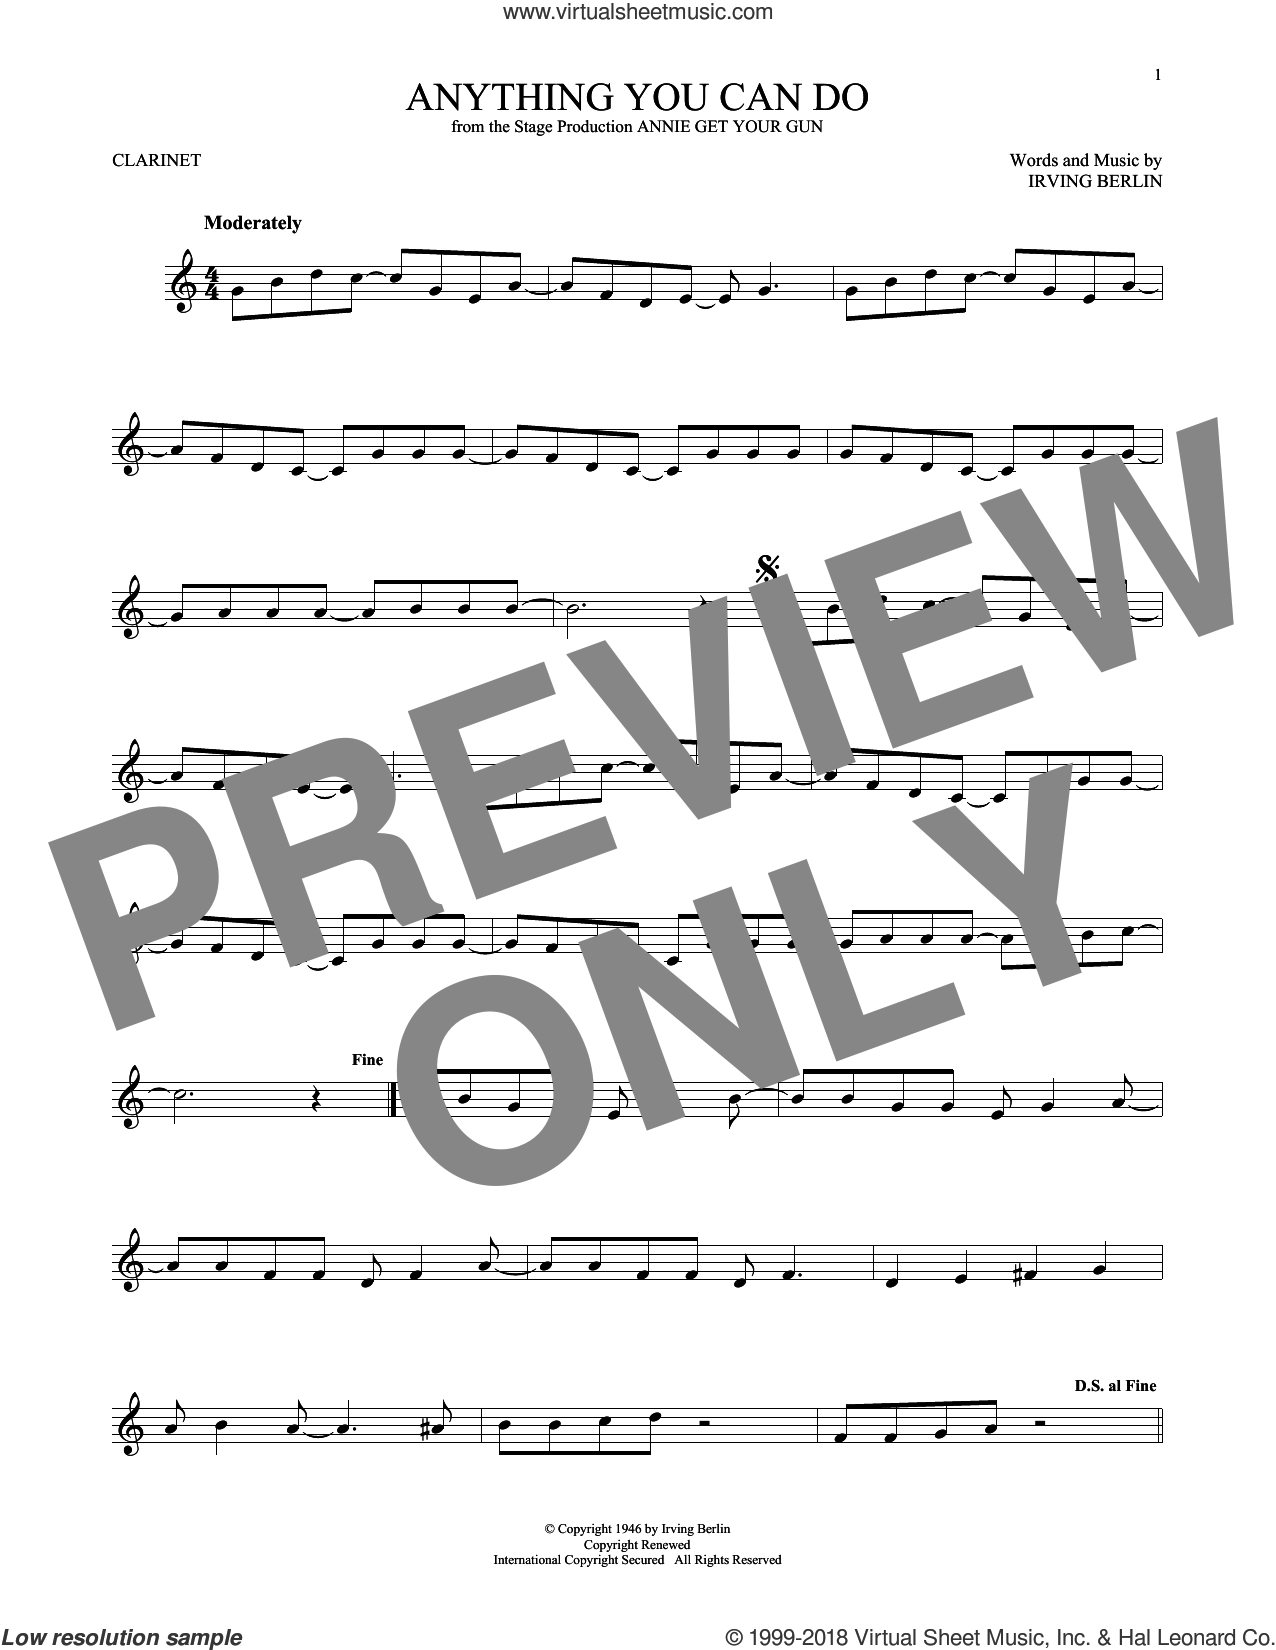 Anything You Can Do sheet music for clarinet solo by Irving Berlin, intermediate skill level